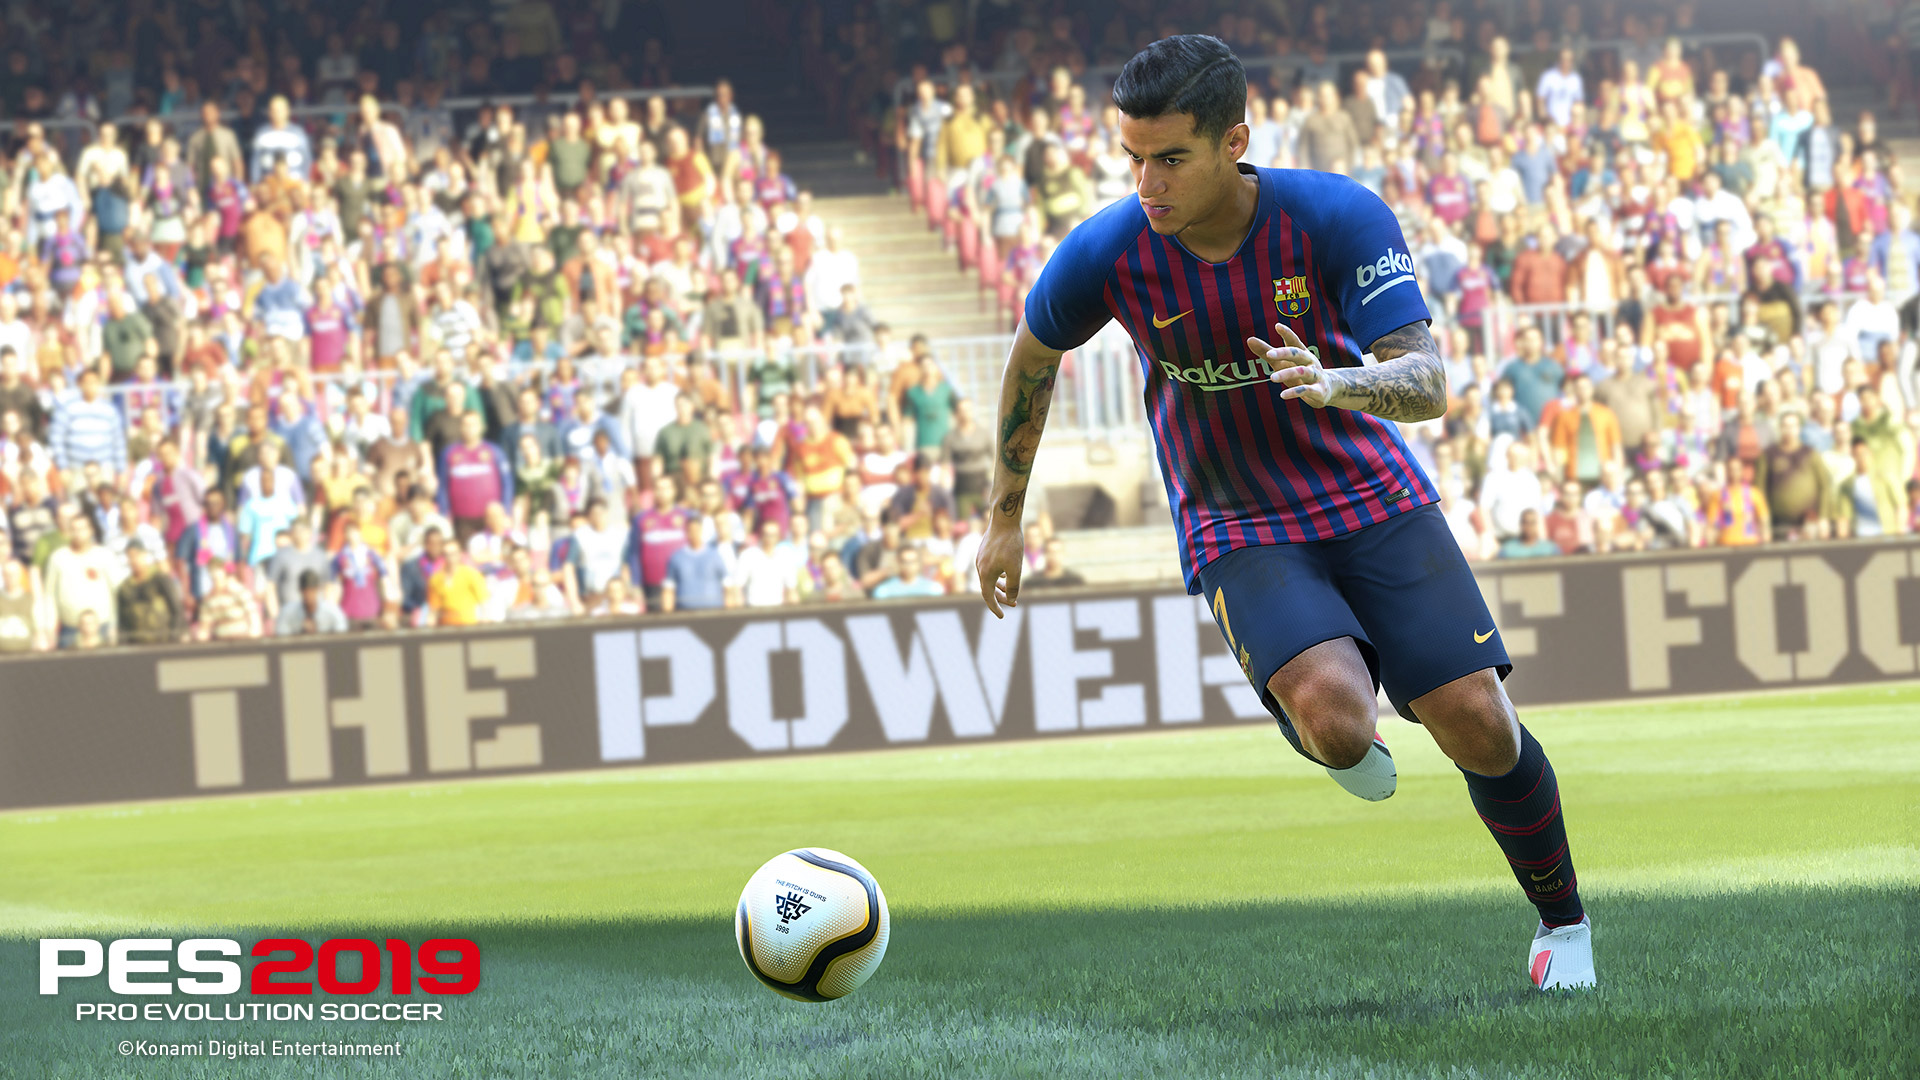 Free Pro Evolution Soccer 2019 Wallpaper in 1920x1080